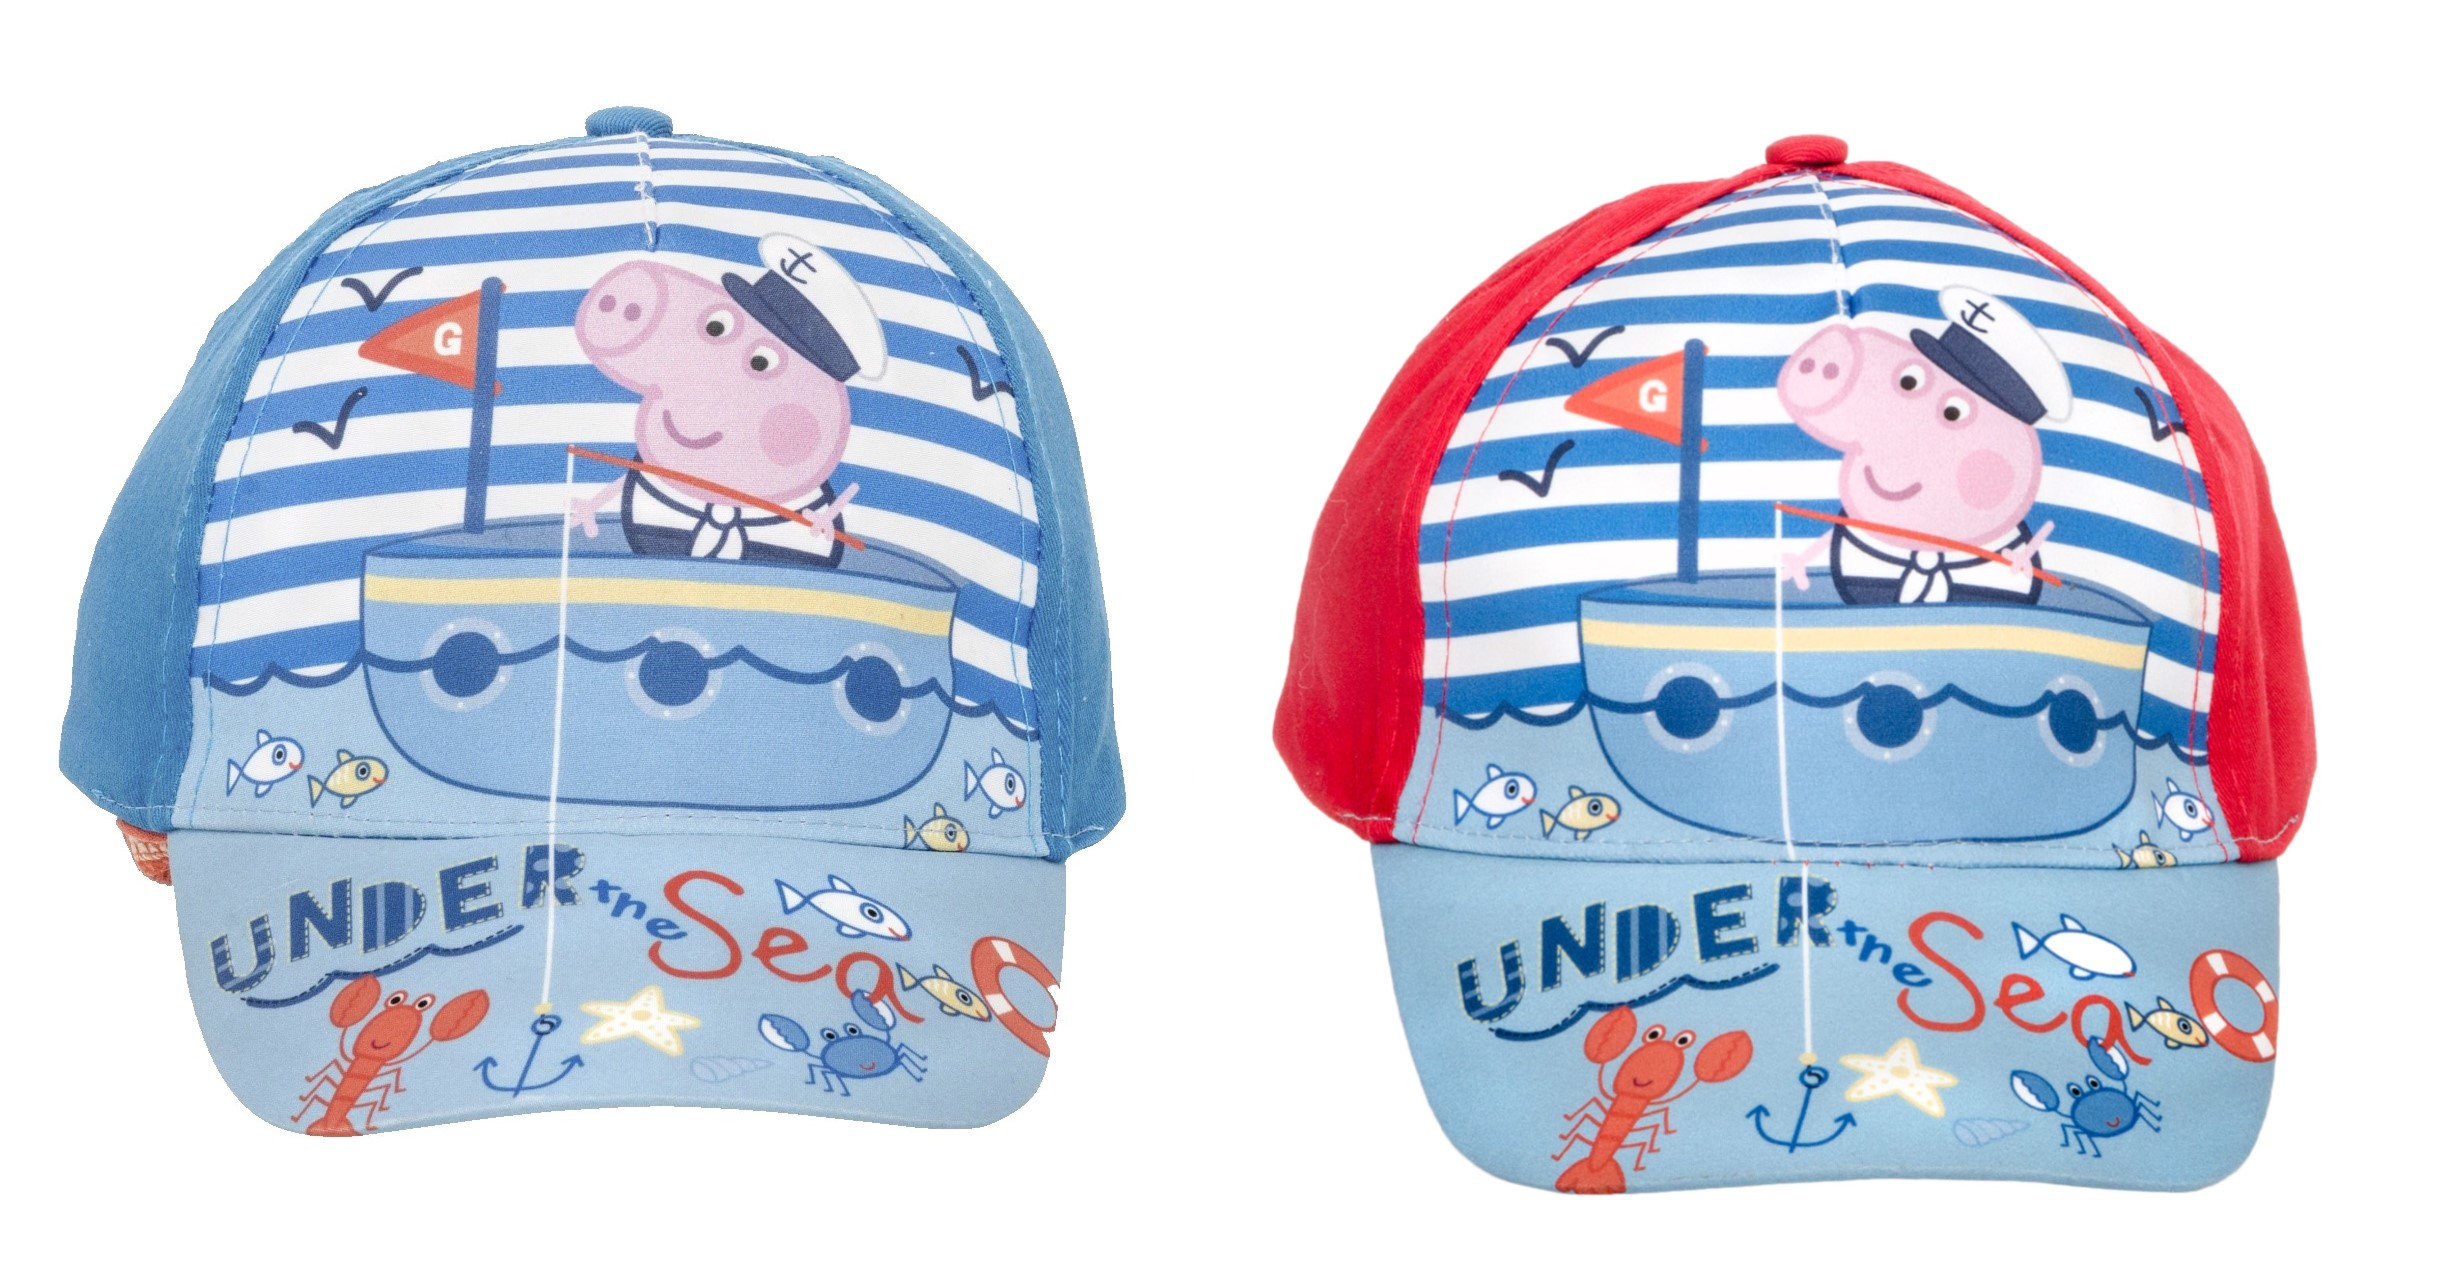 Details about Peppa Pig cap Baseball caps cappy sun protection hat for kids  blue and red New a5312a17c70